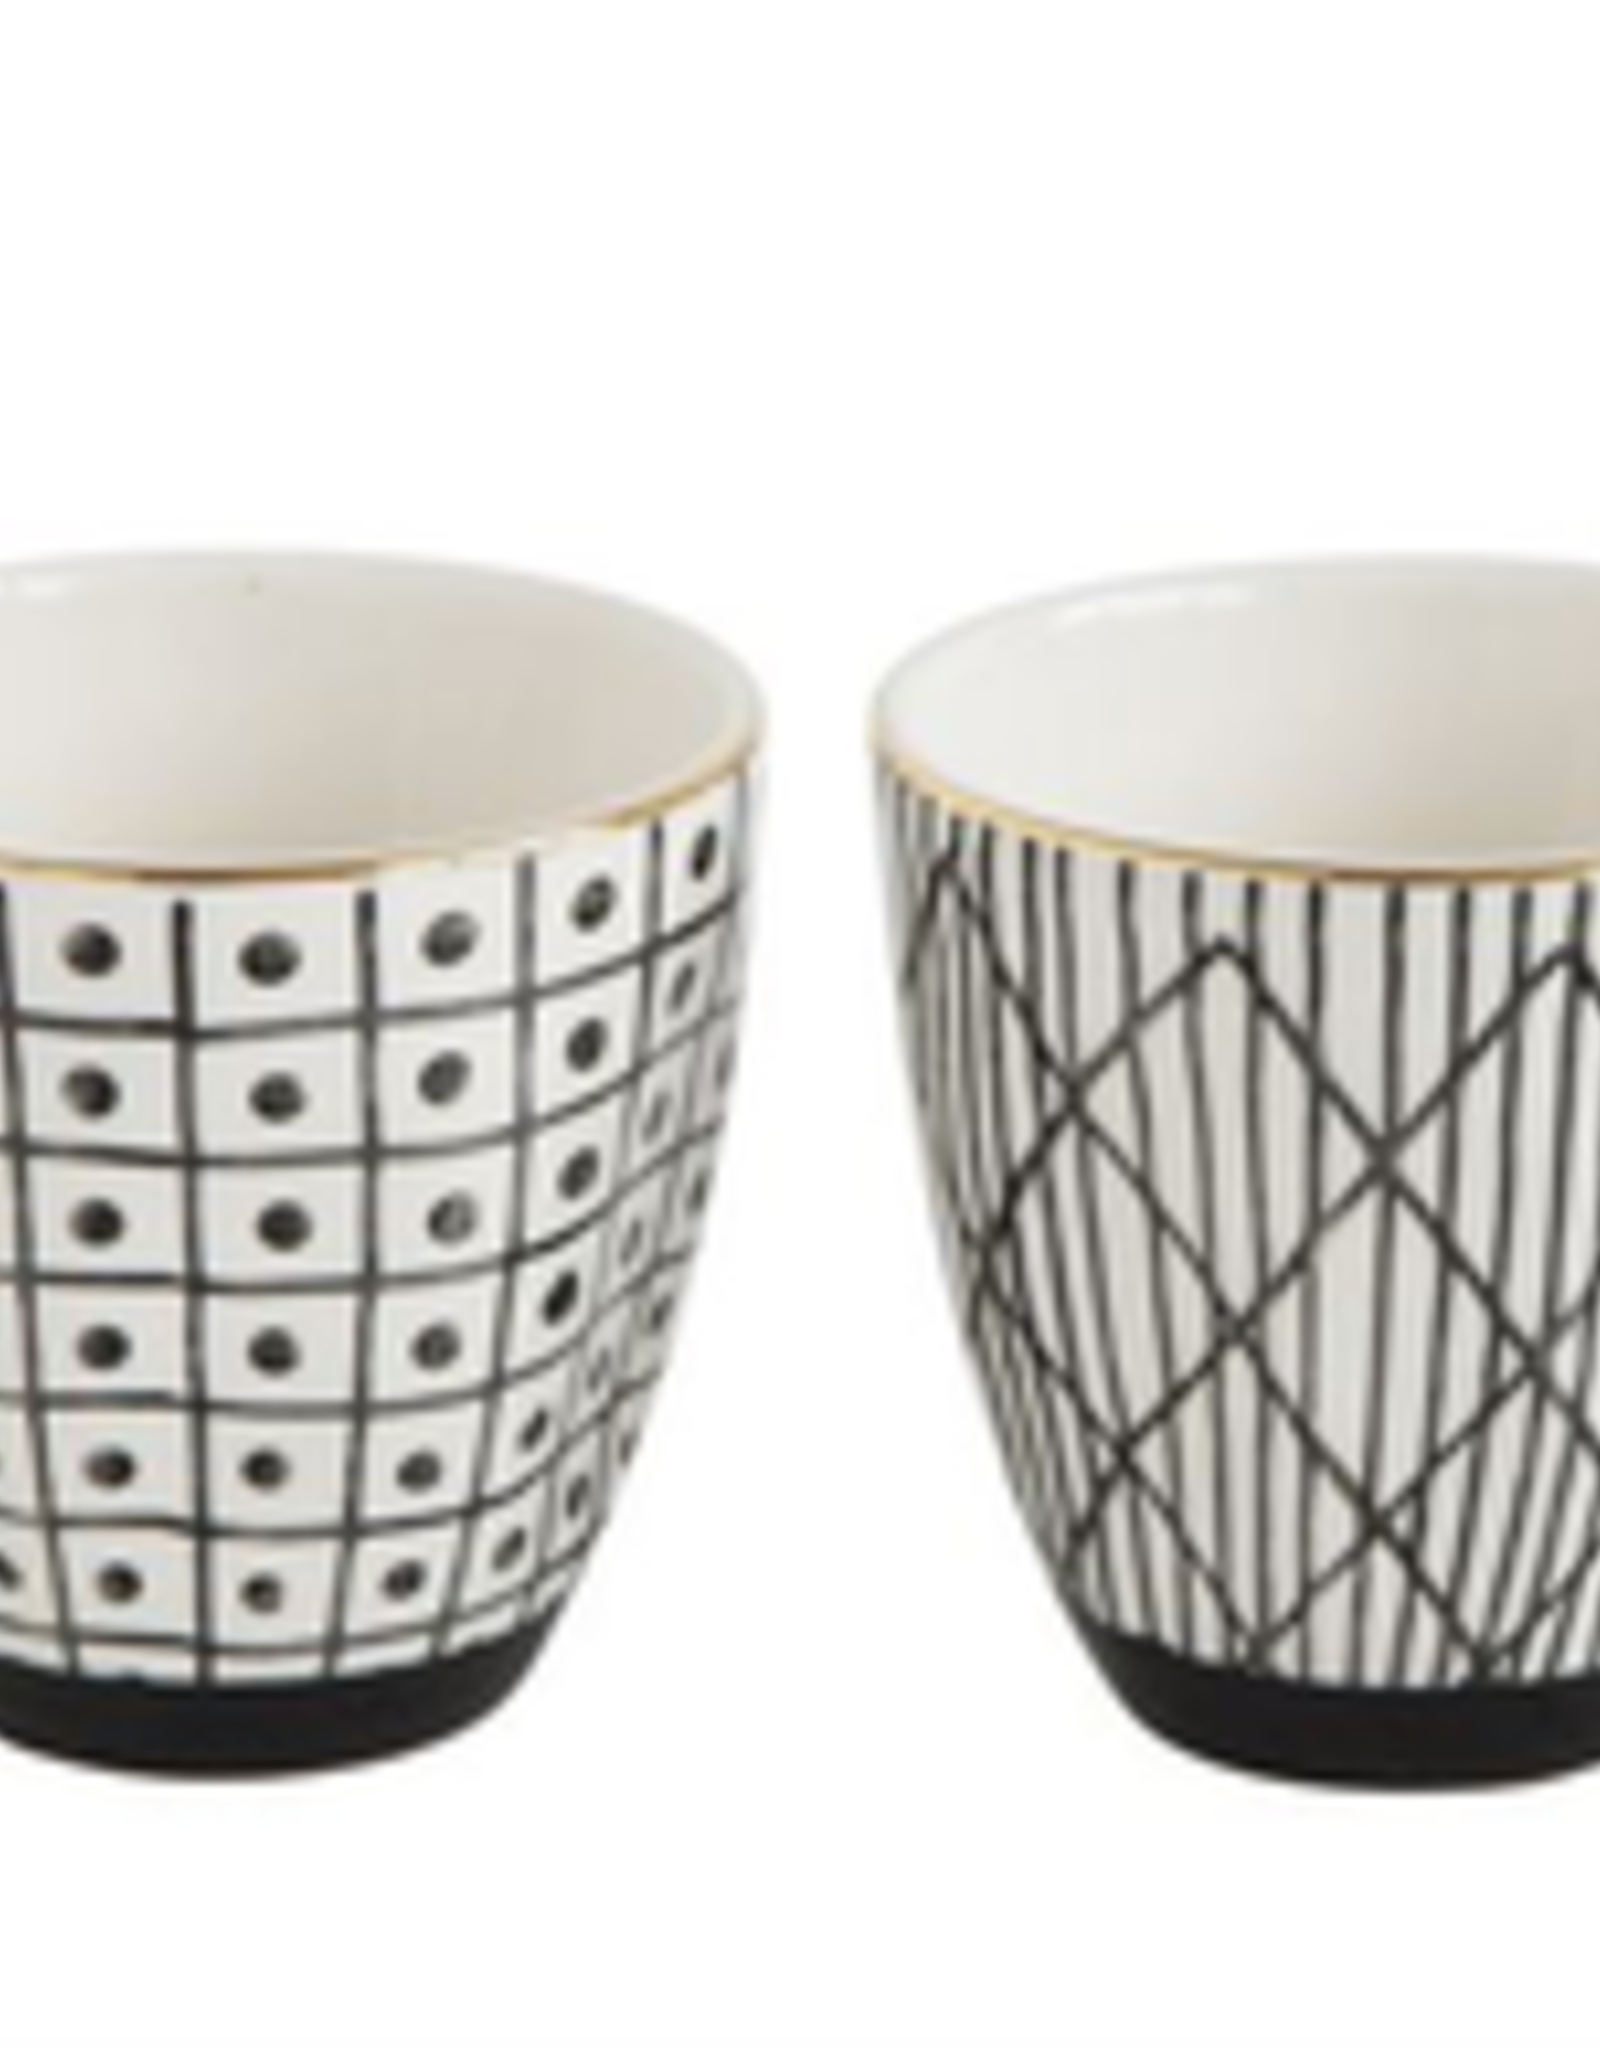 CUP-BLACK PATTERN W/ GOLD, STONEWARE